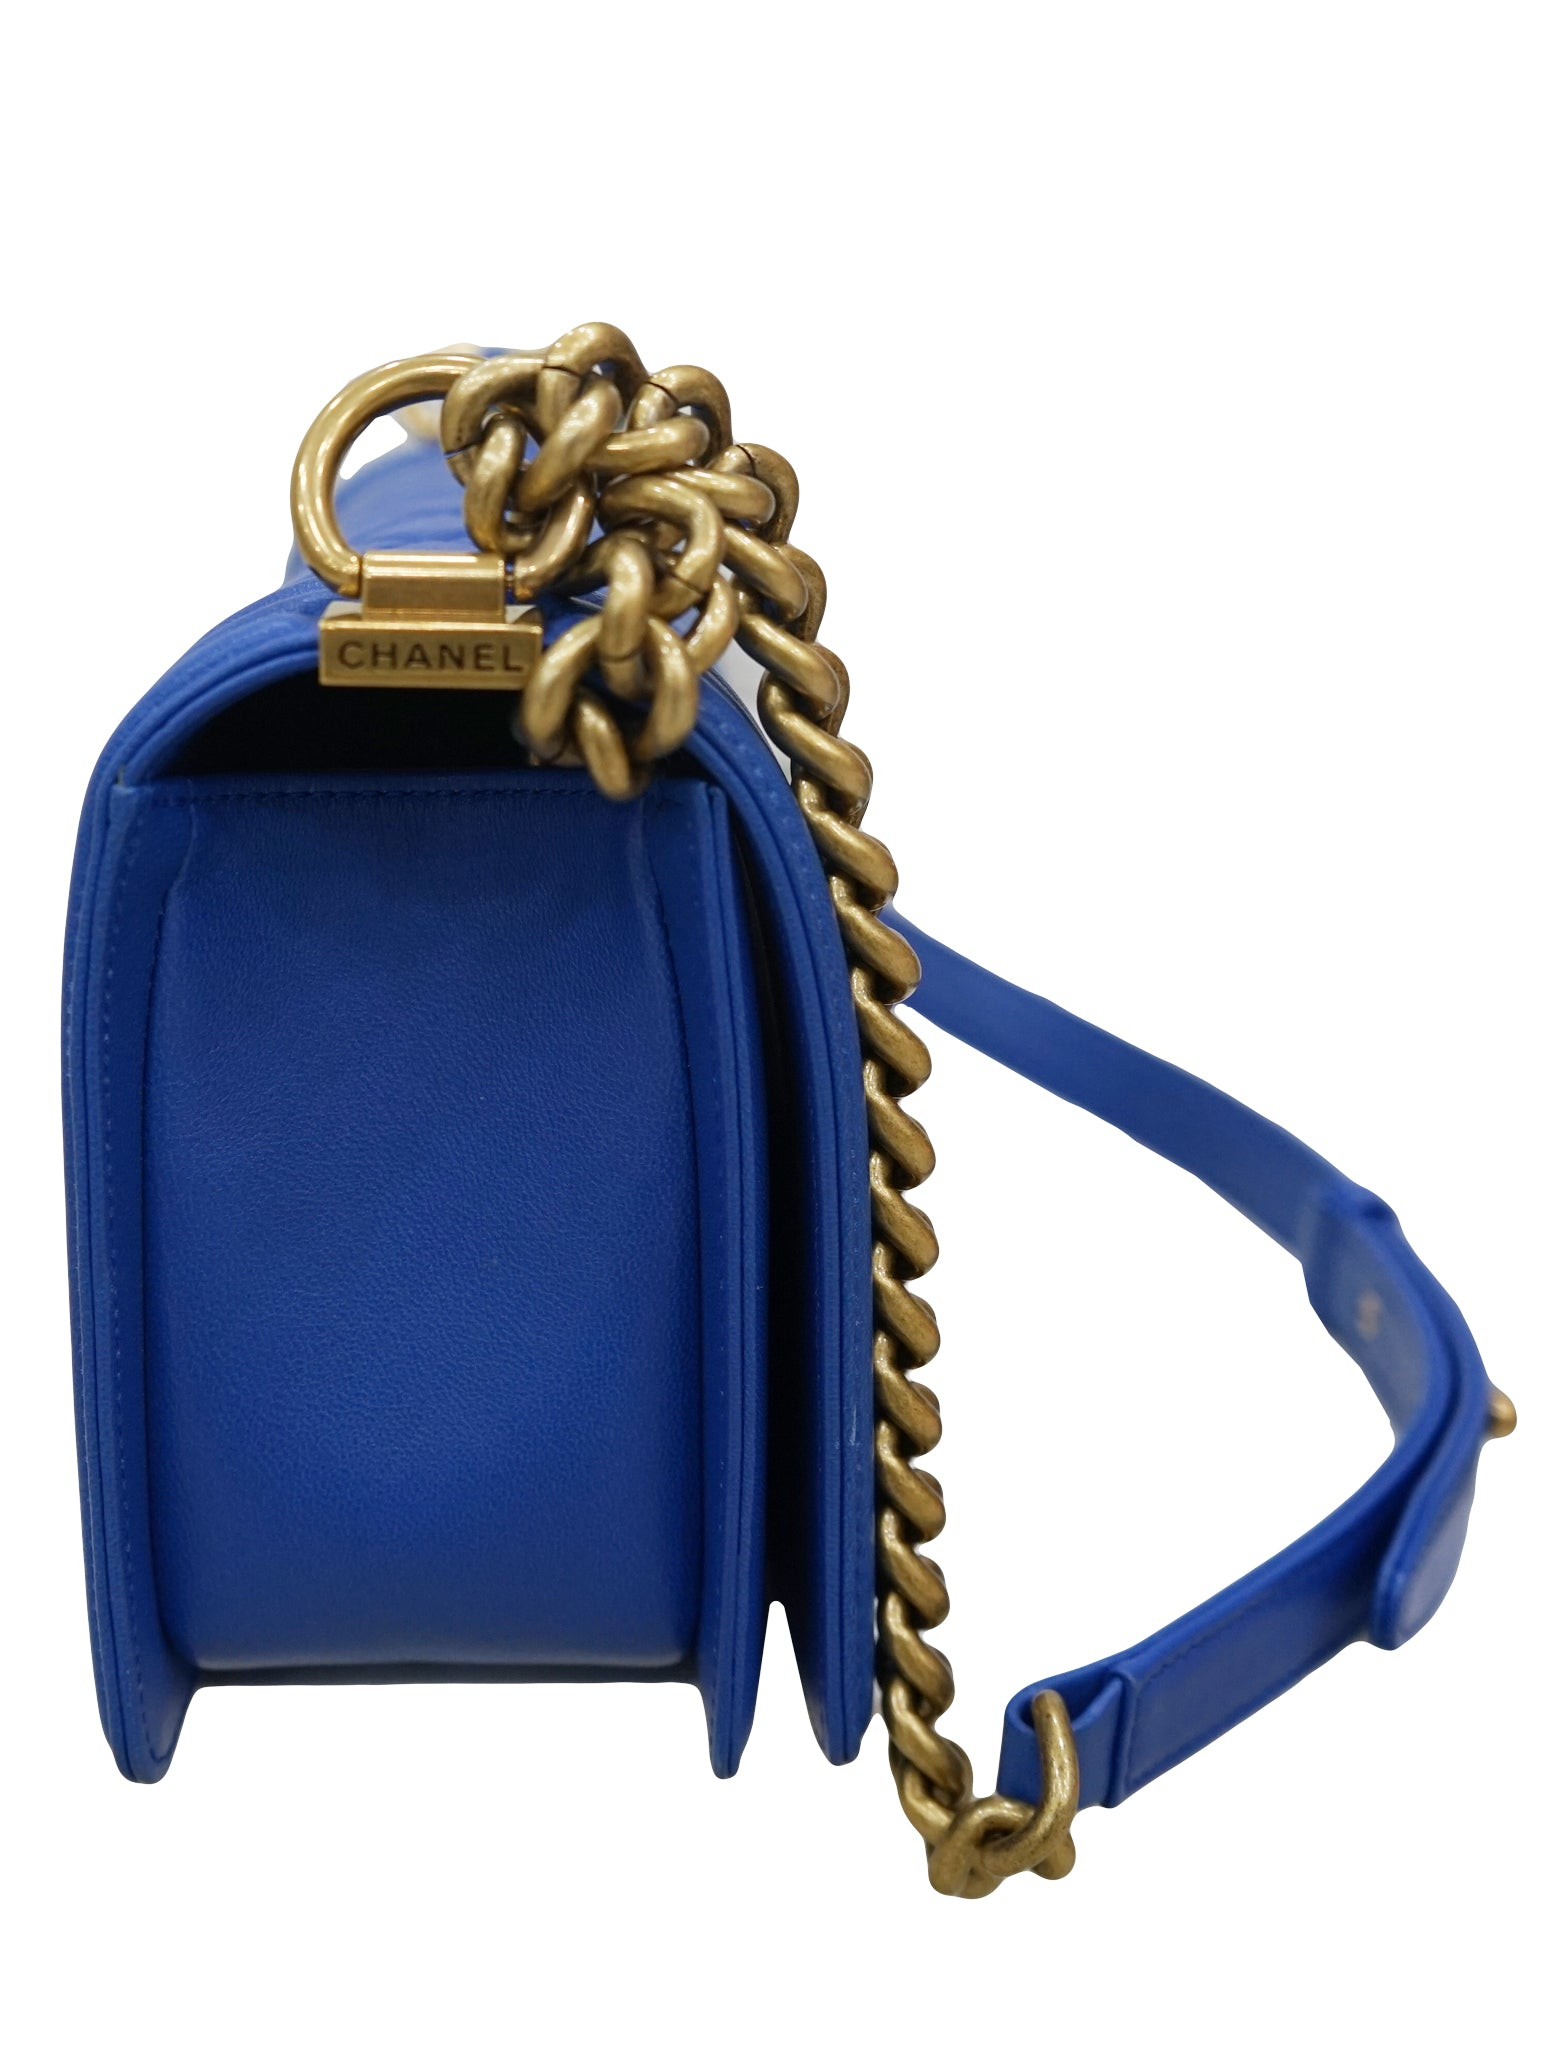 COBALT QUILTED LAMBSKIN LEATHER BOY BAG